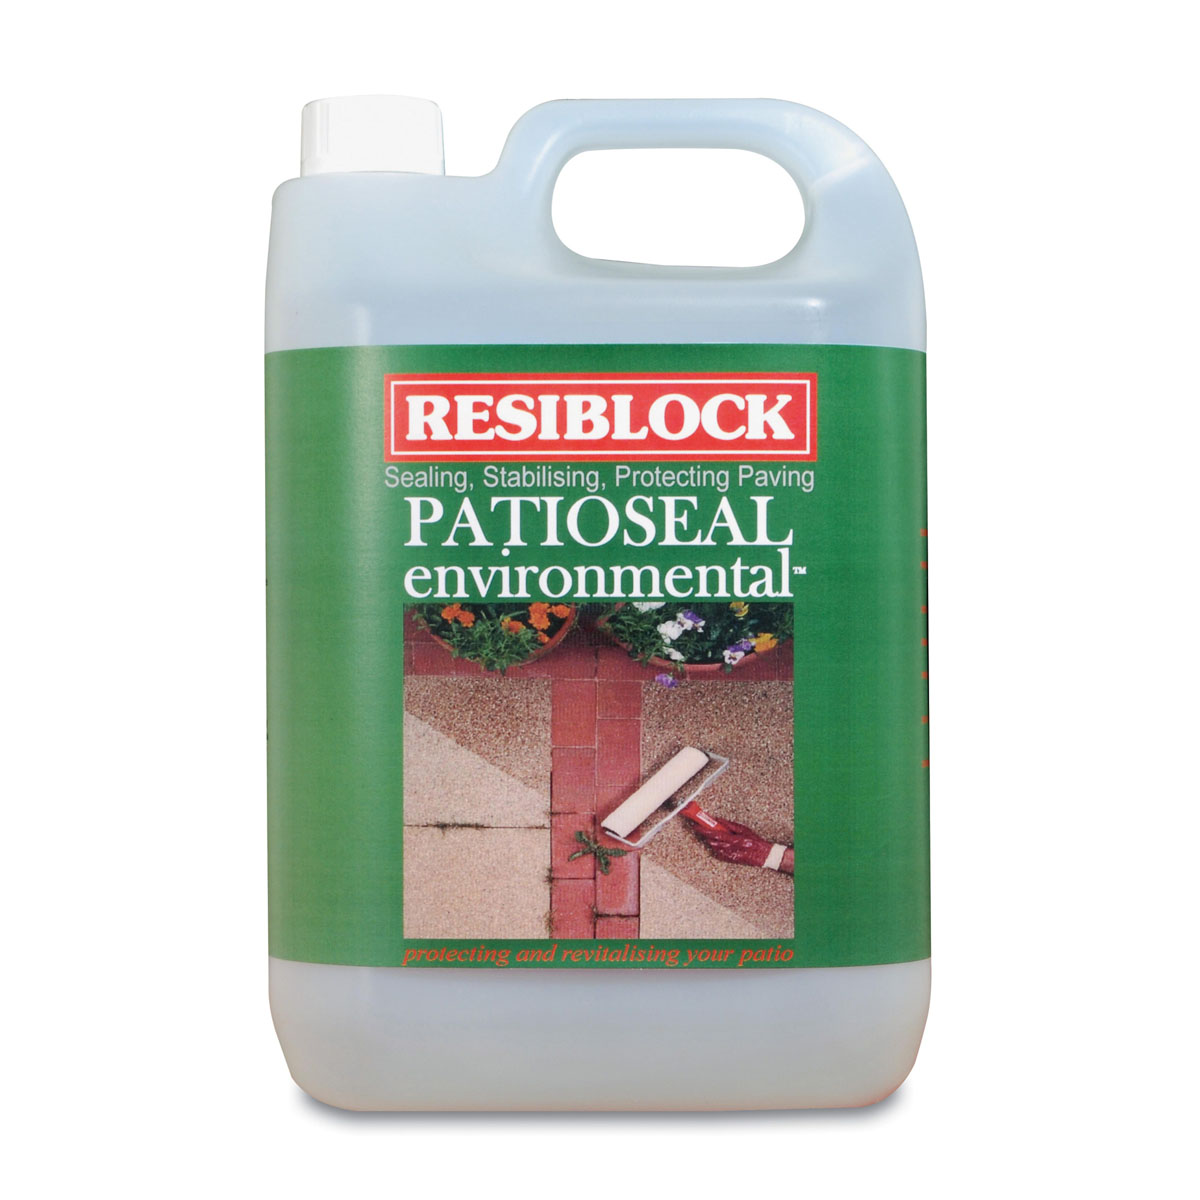 Resiblock Patioseal Environmental